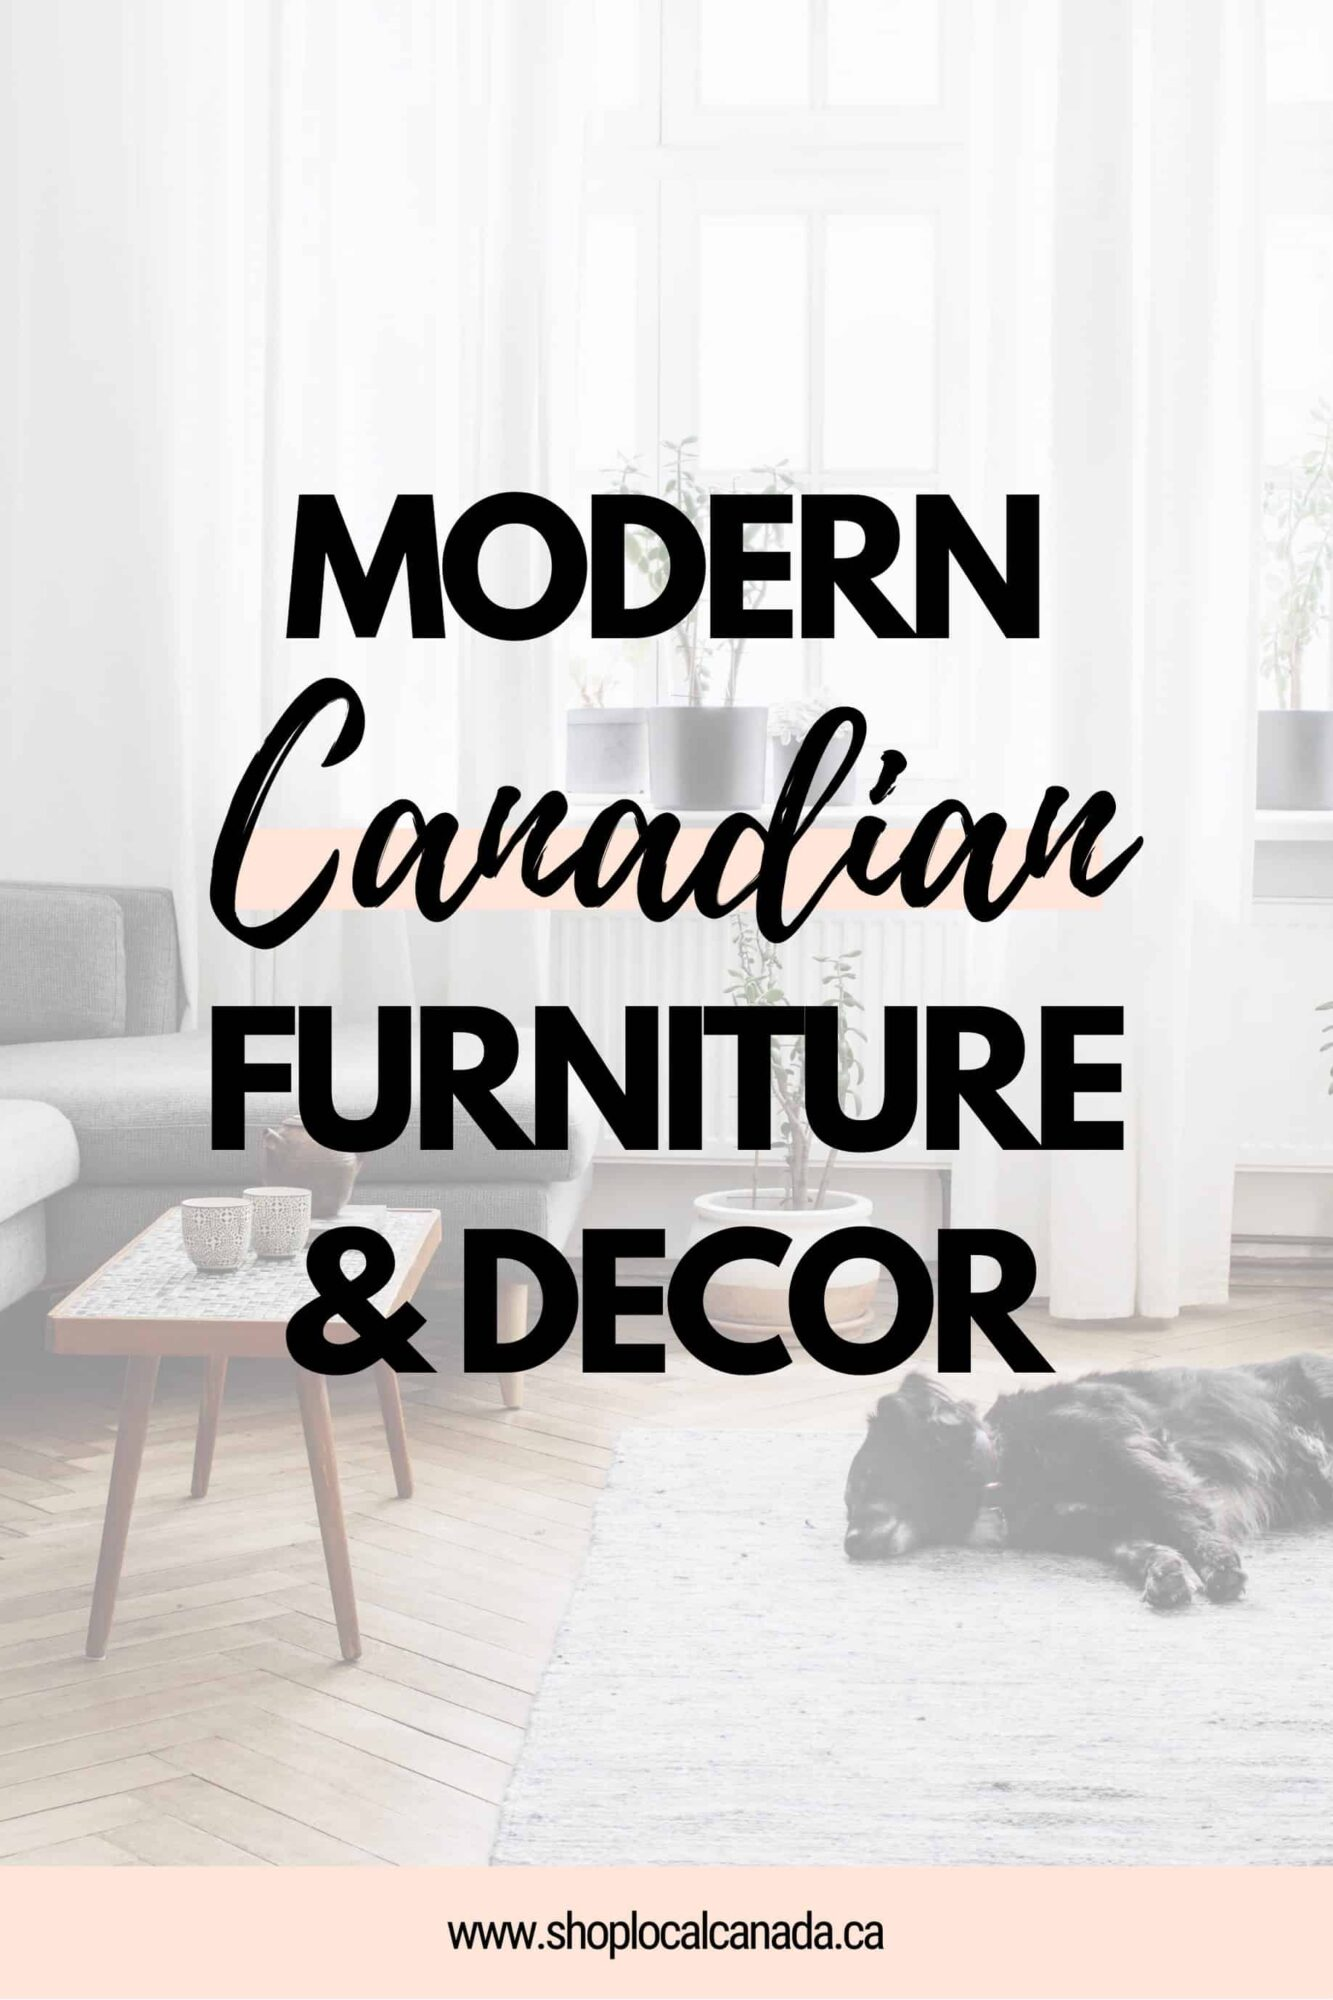 Modern Furniture & Decor